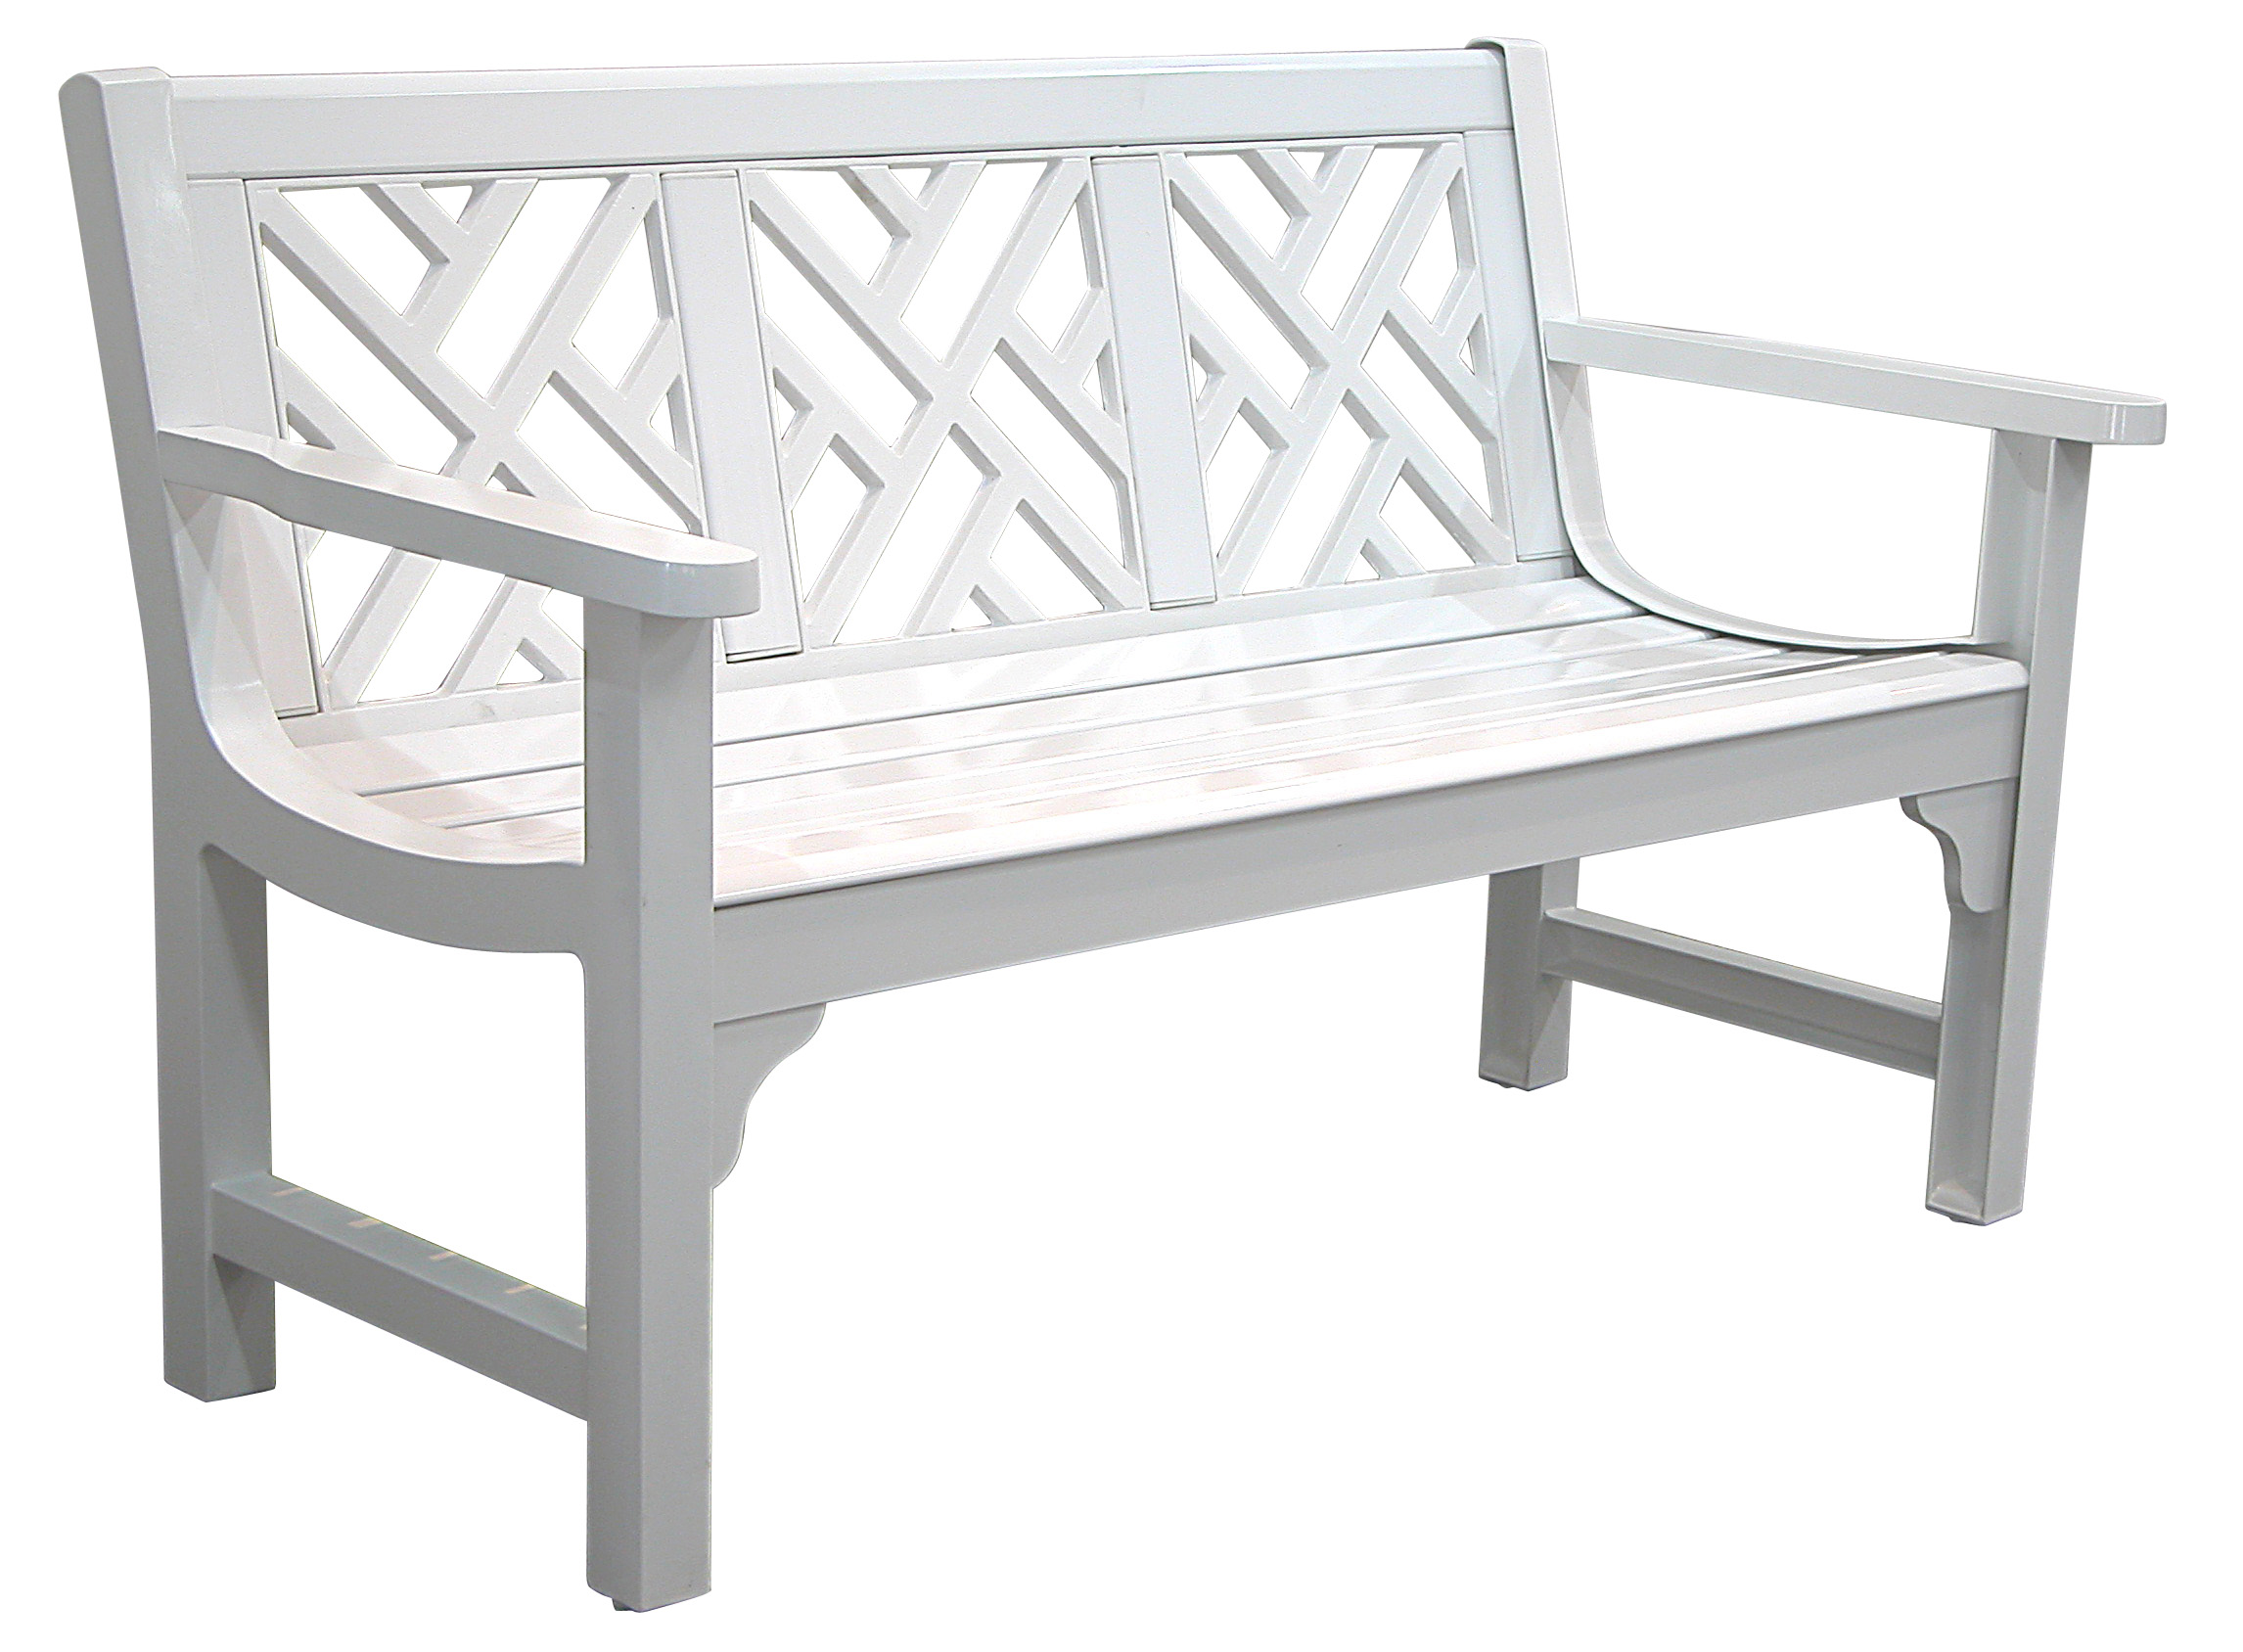 Patio Furniture Bench Aluminum Chippendale